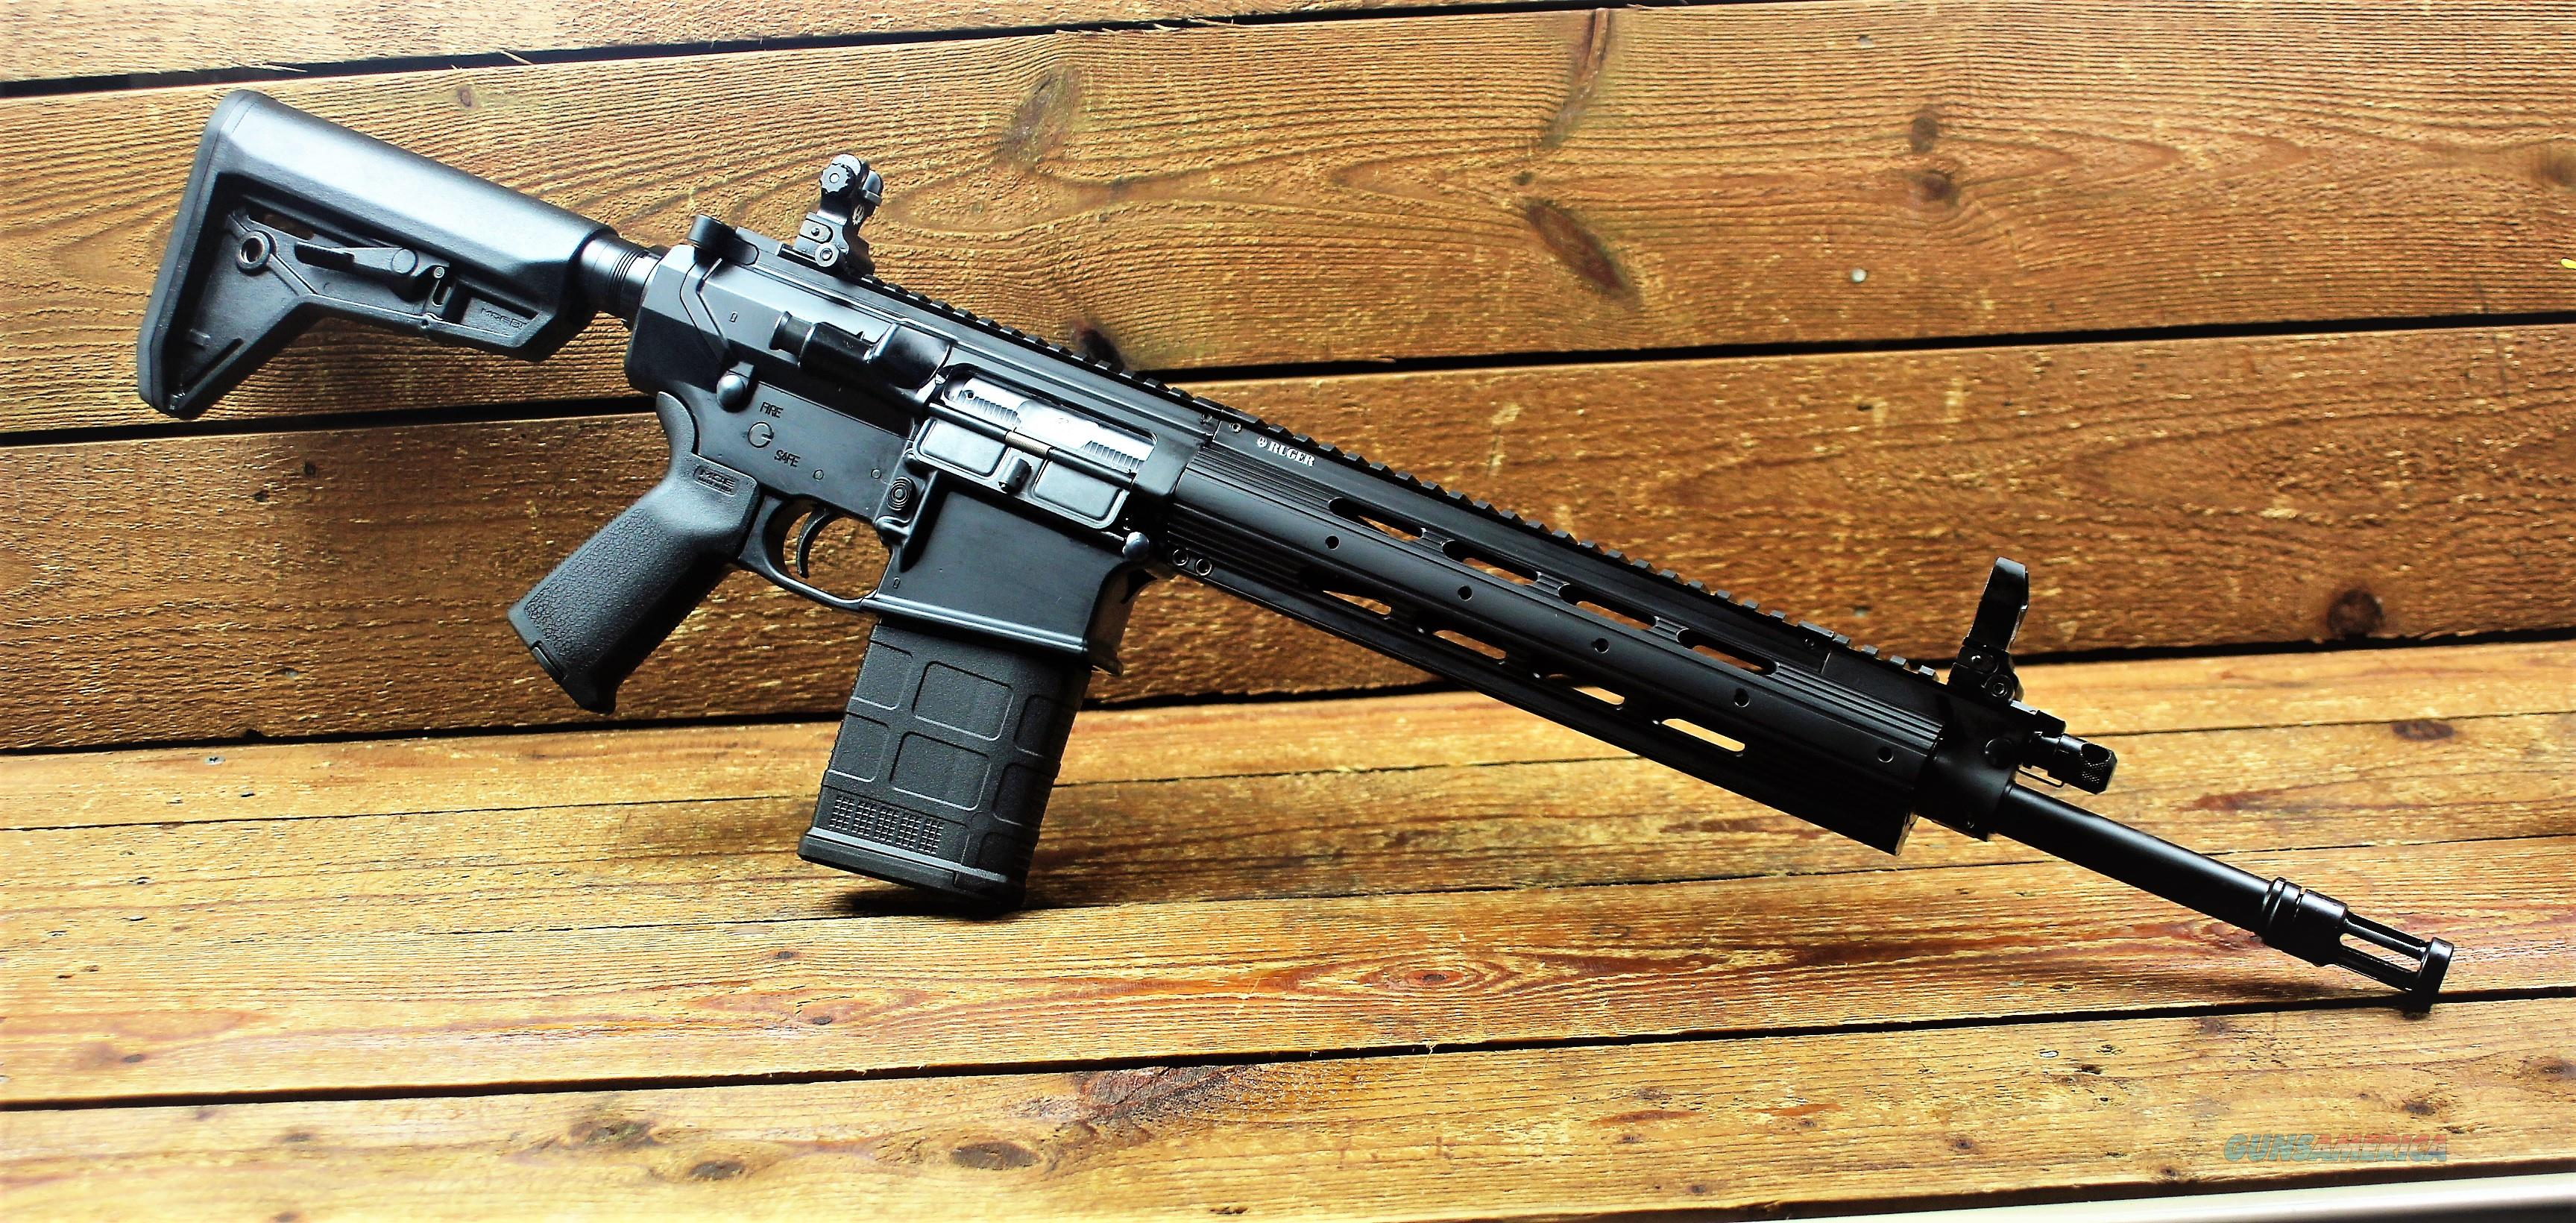 Ruger SR-762 Semi Auto Rifle .308 Win/7.62 NATO Collapsible Stock ar-10 ar10 5601  736676056019 easy pay $115 Layaway    Guns > Rifles > Ruger Rifles > SR Series